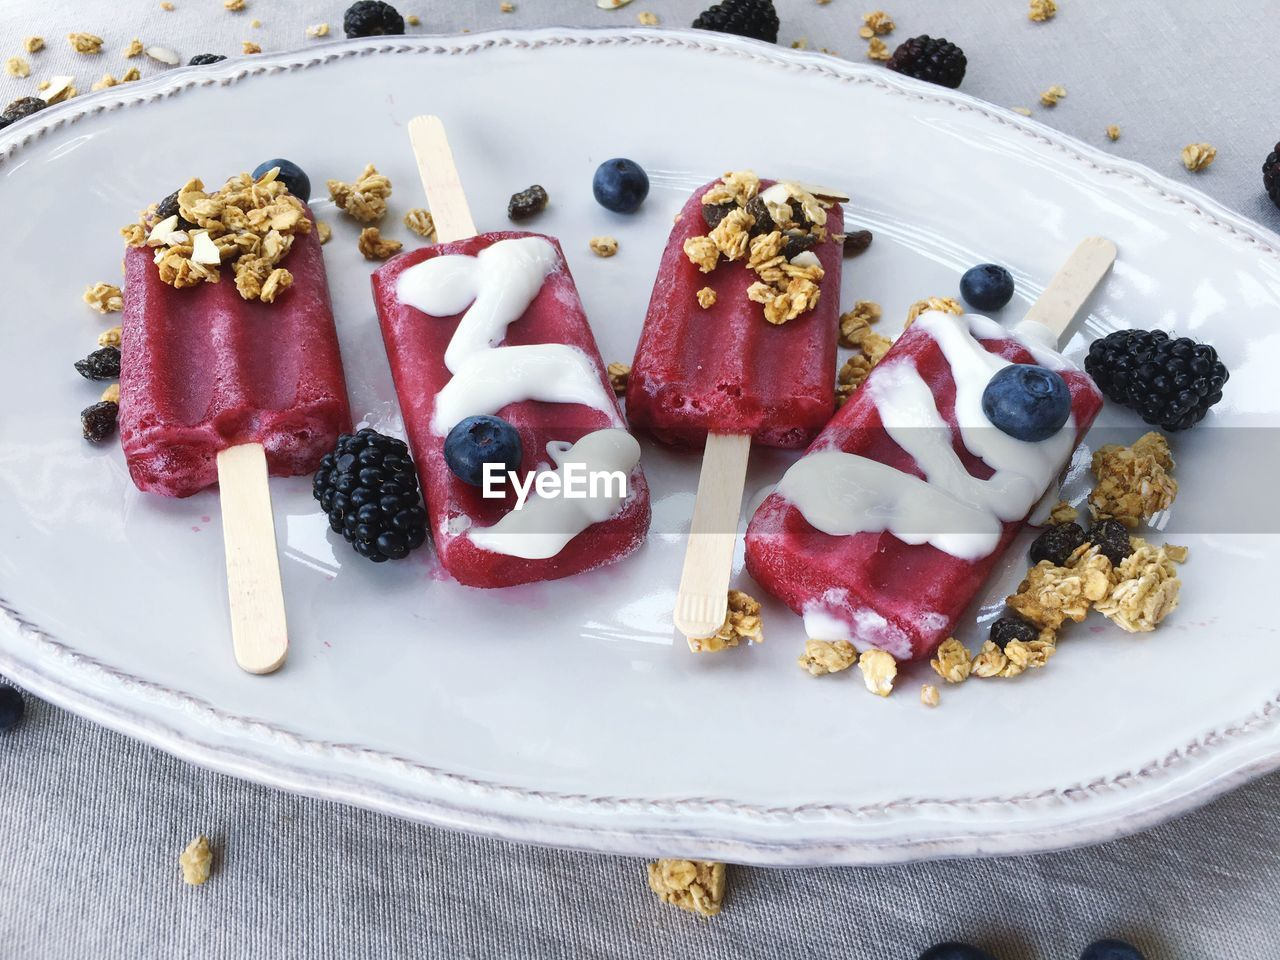 CLOSE-UP OF BERRY POPSICLES ON SERVING PLATE